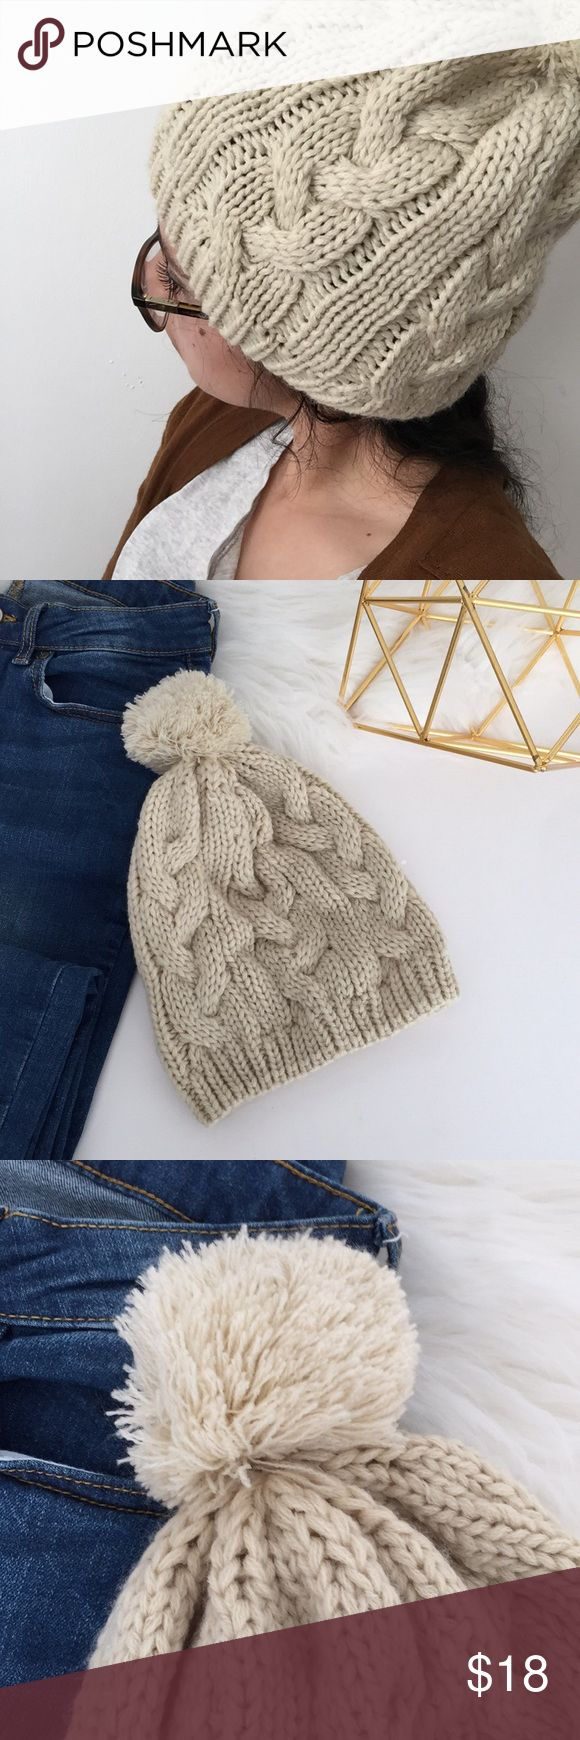 NWOT Cream beanie Only been worn to take picture New without tag Has a pom pom on top  Prefect for this winter   ❗️offers welcome ❗️ Accessories Hats